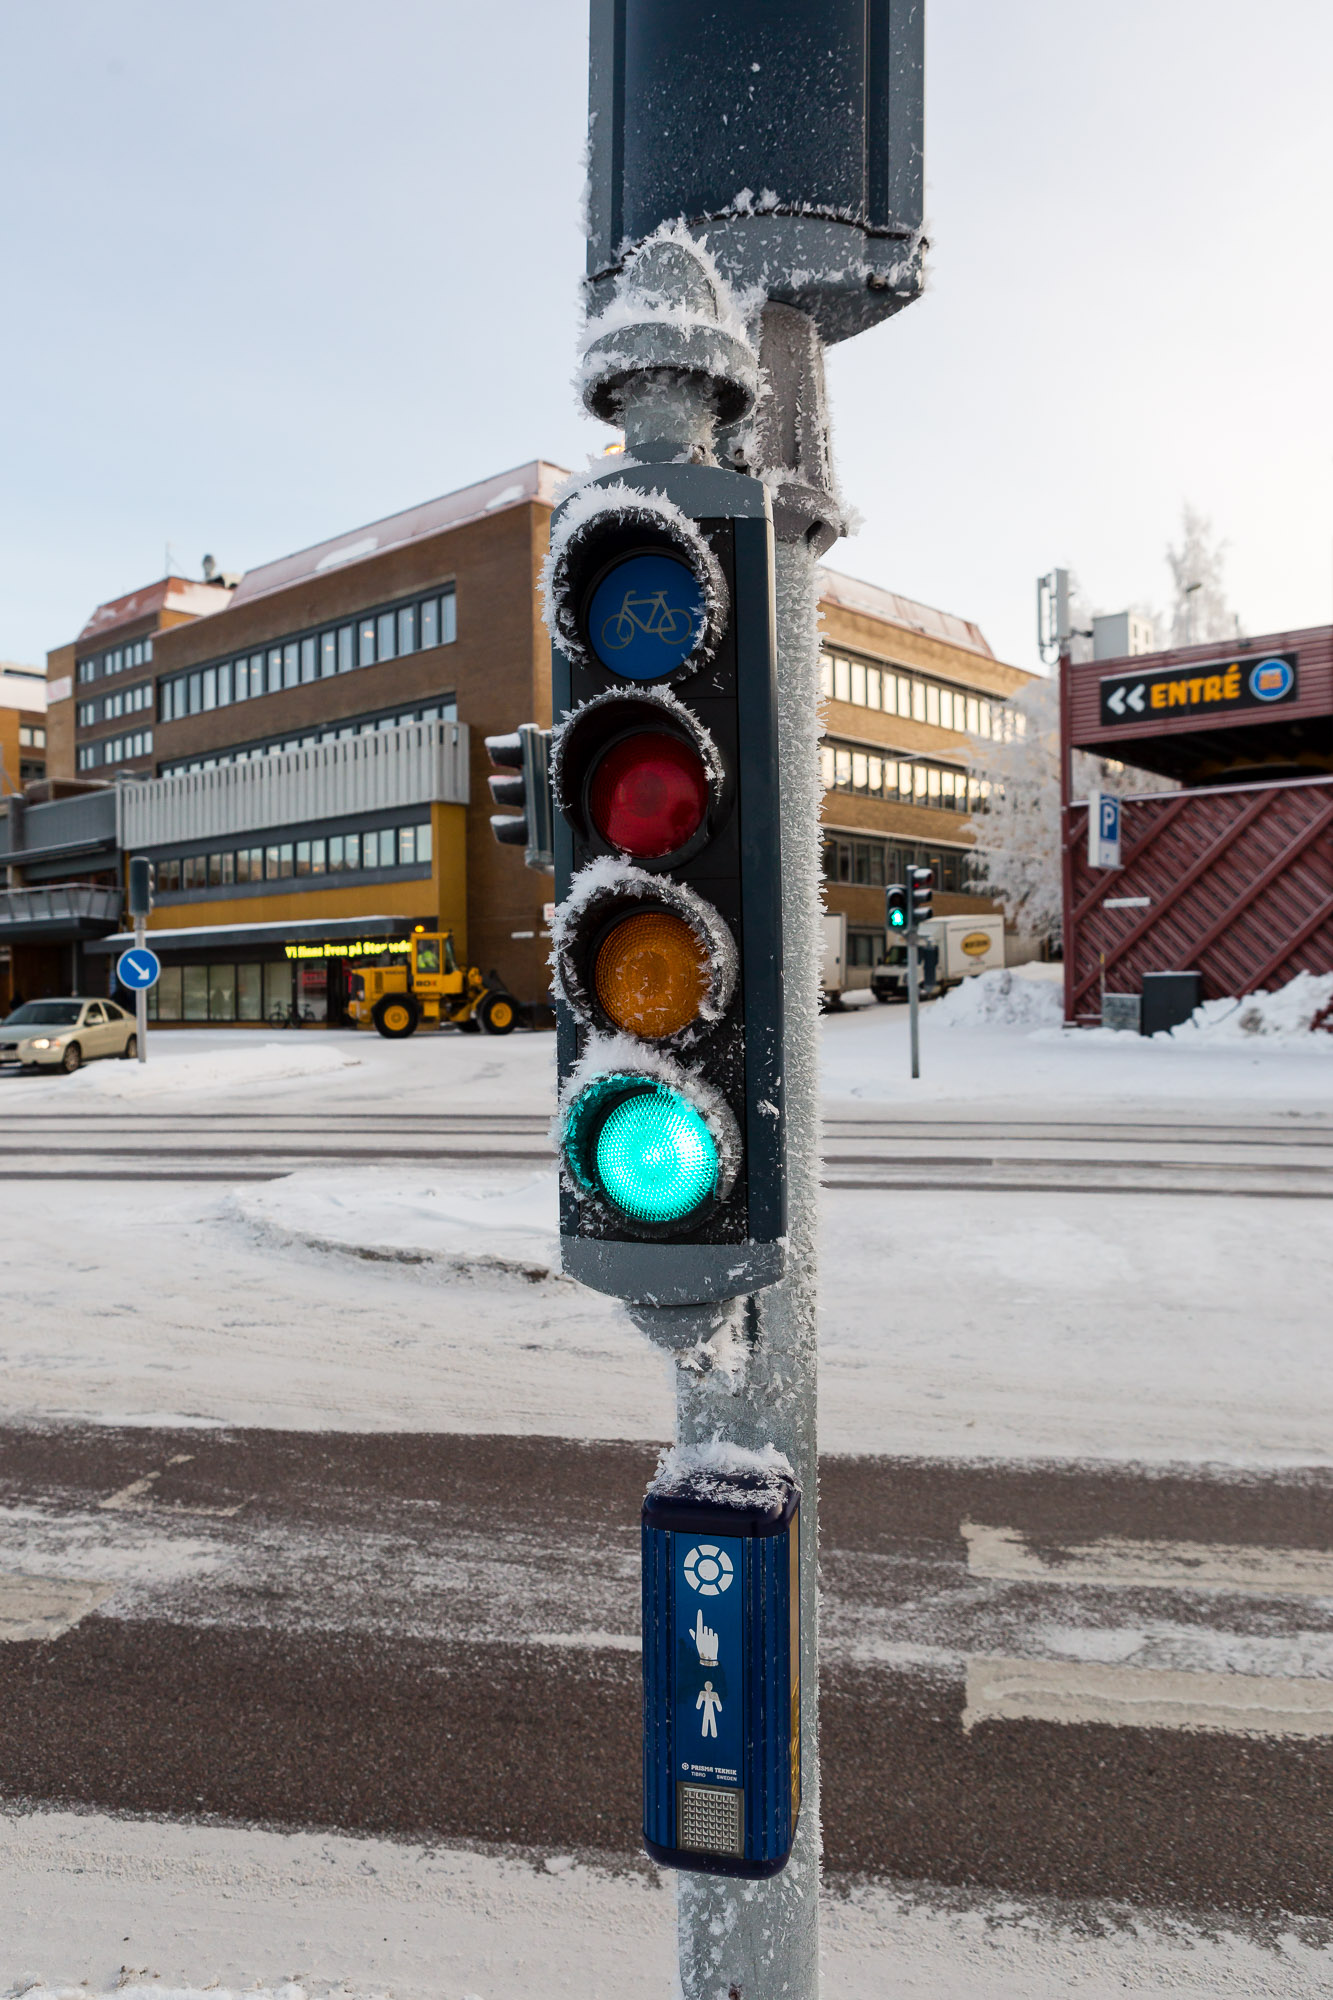 Crossing signal, Luleå, Sweden January 2017, Ben Lee Photography